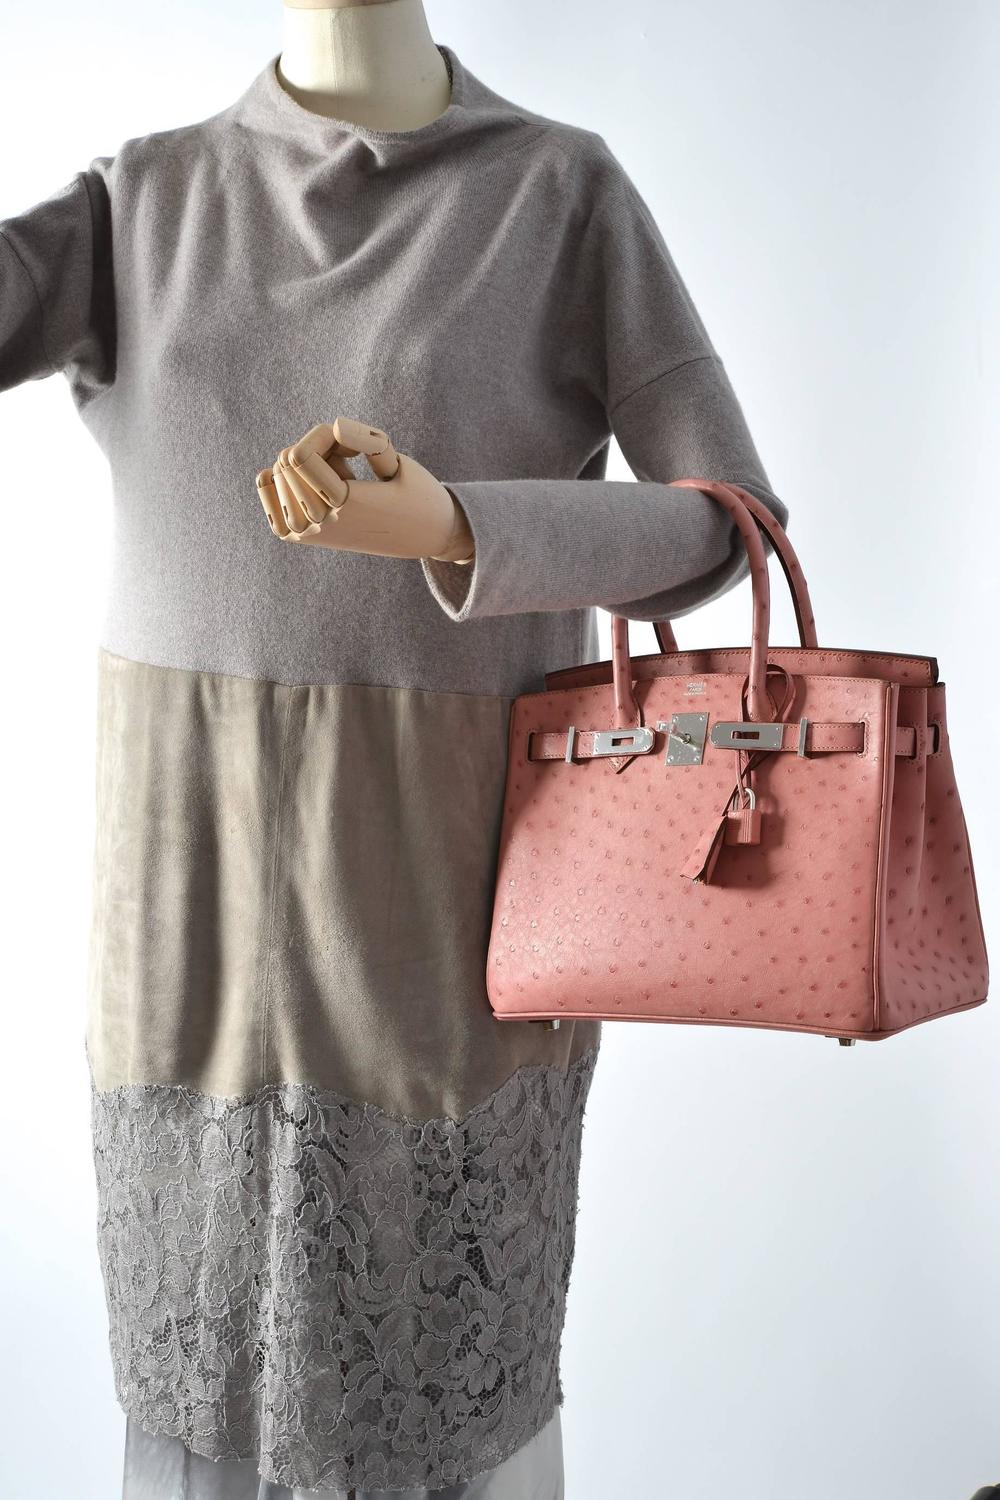 hermes paris wallet - HERMES BIRKIN BAG 30CM OSTRICH TERRE CUITE PINK WITH PALL HARDWARE ...